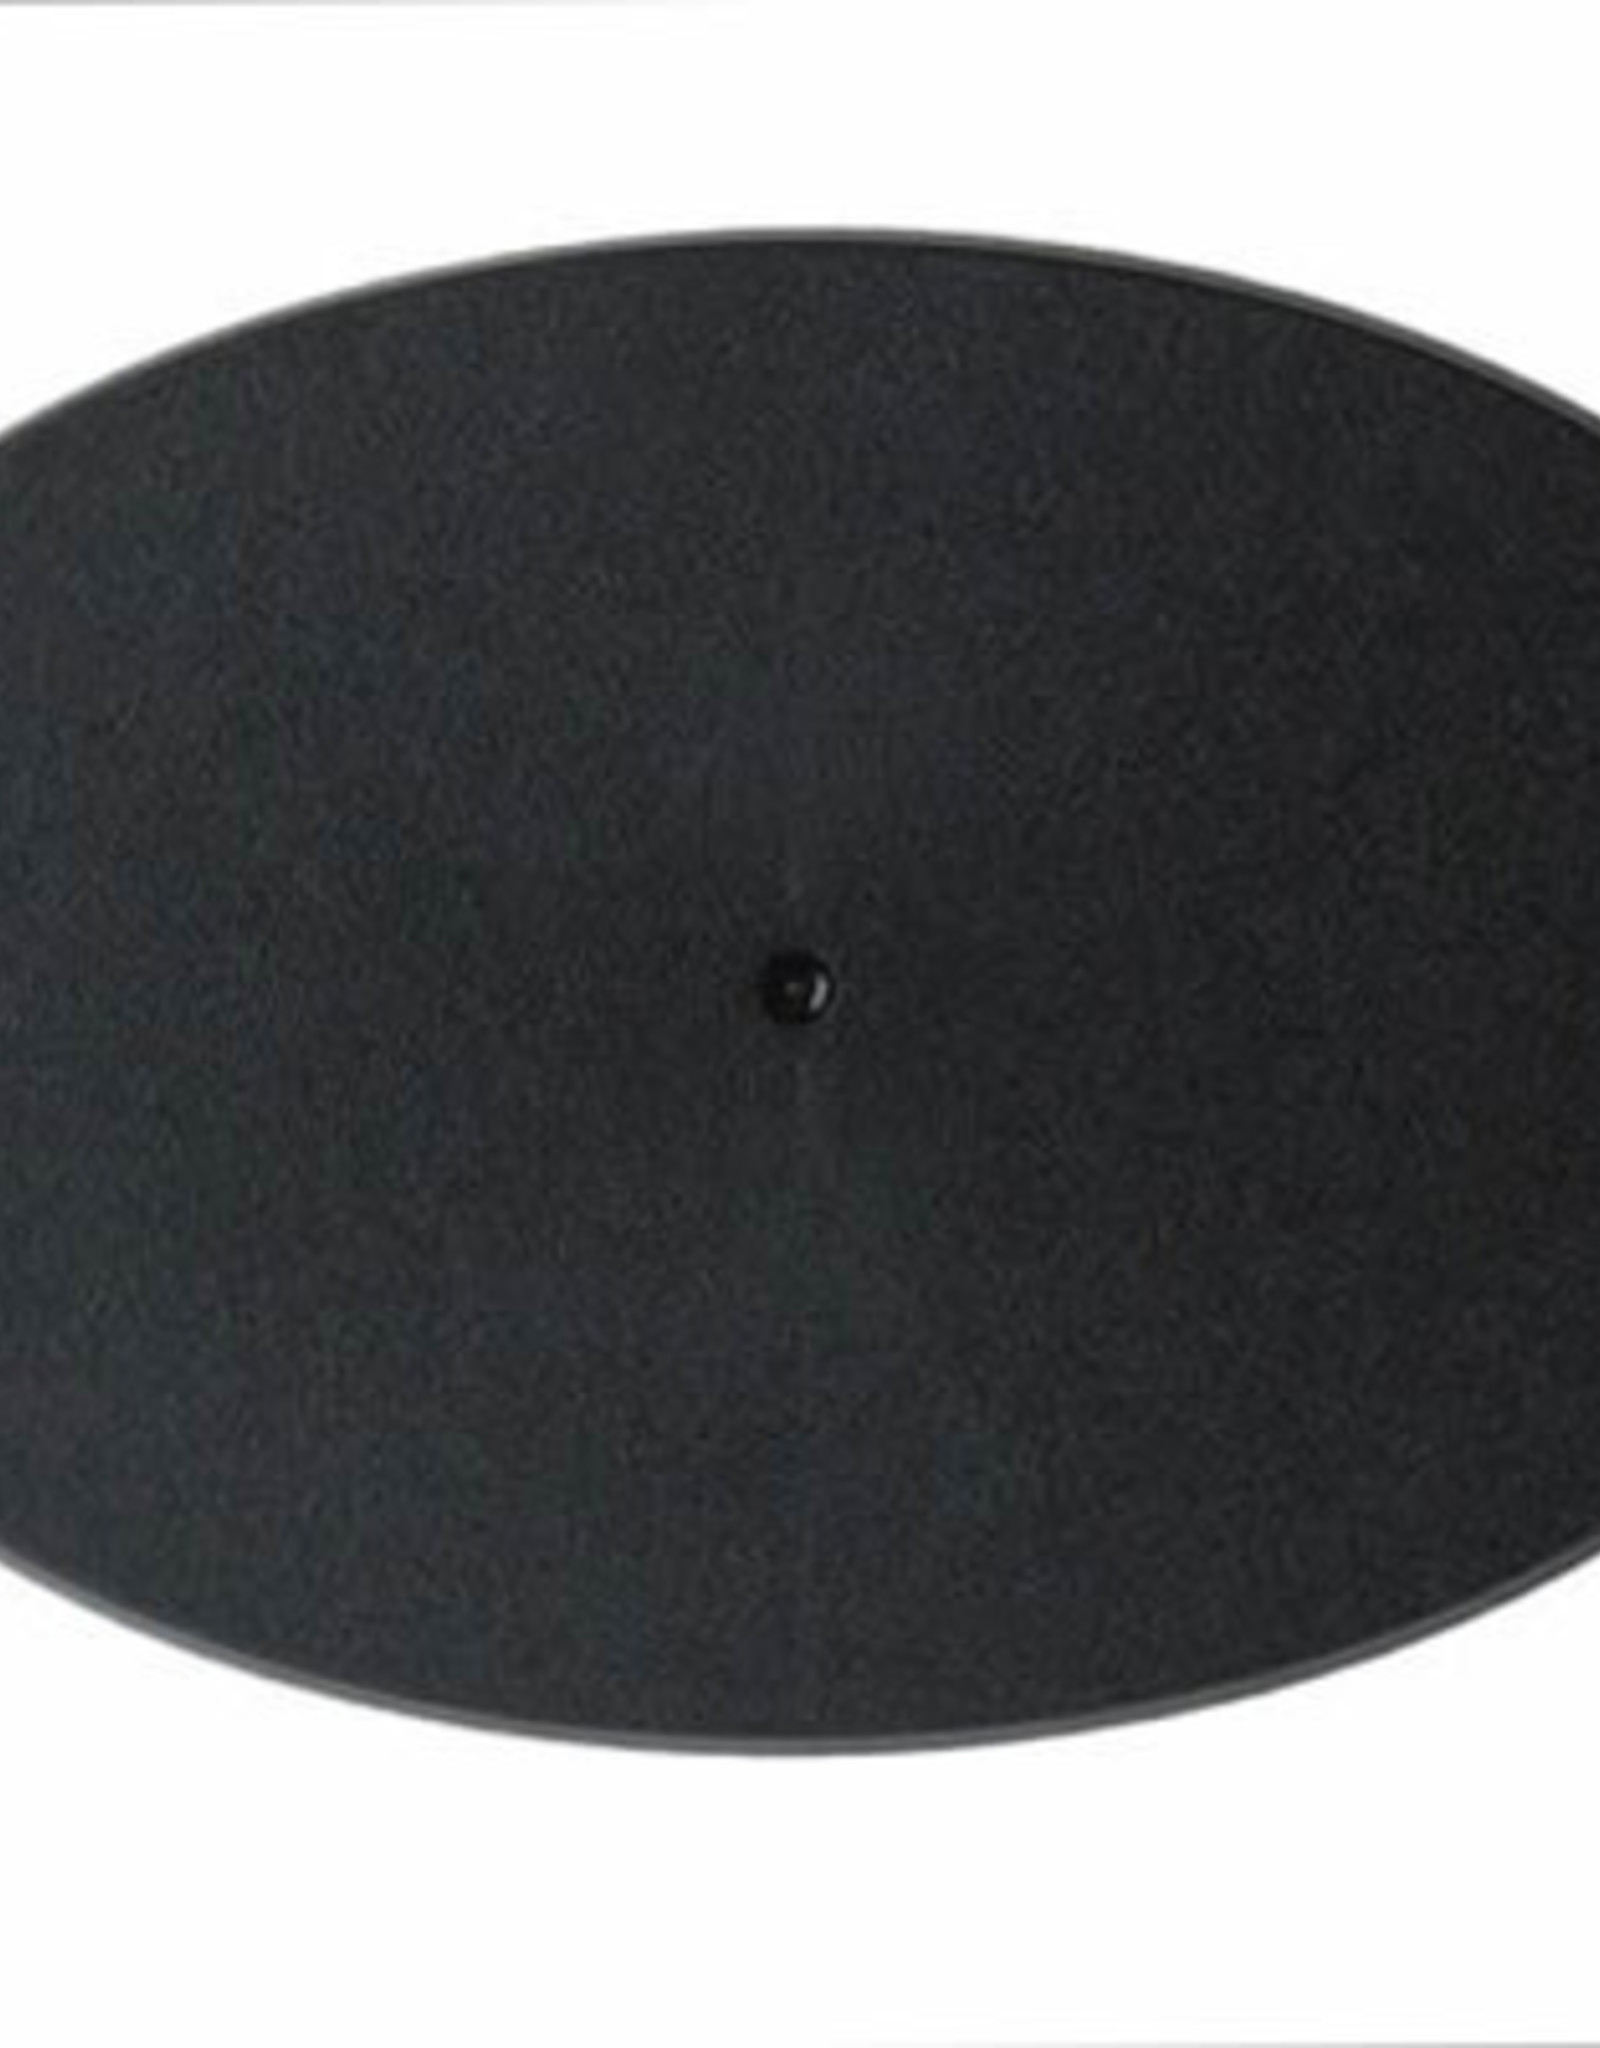 Games Workshop 105x70mm Oval Bases